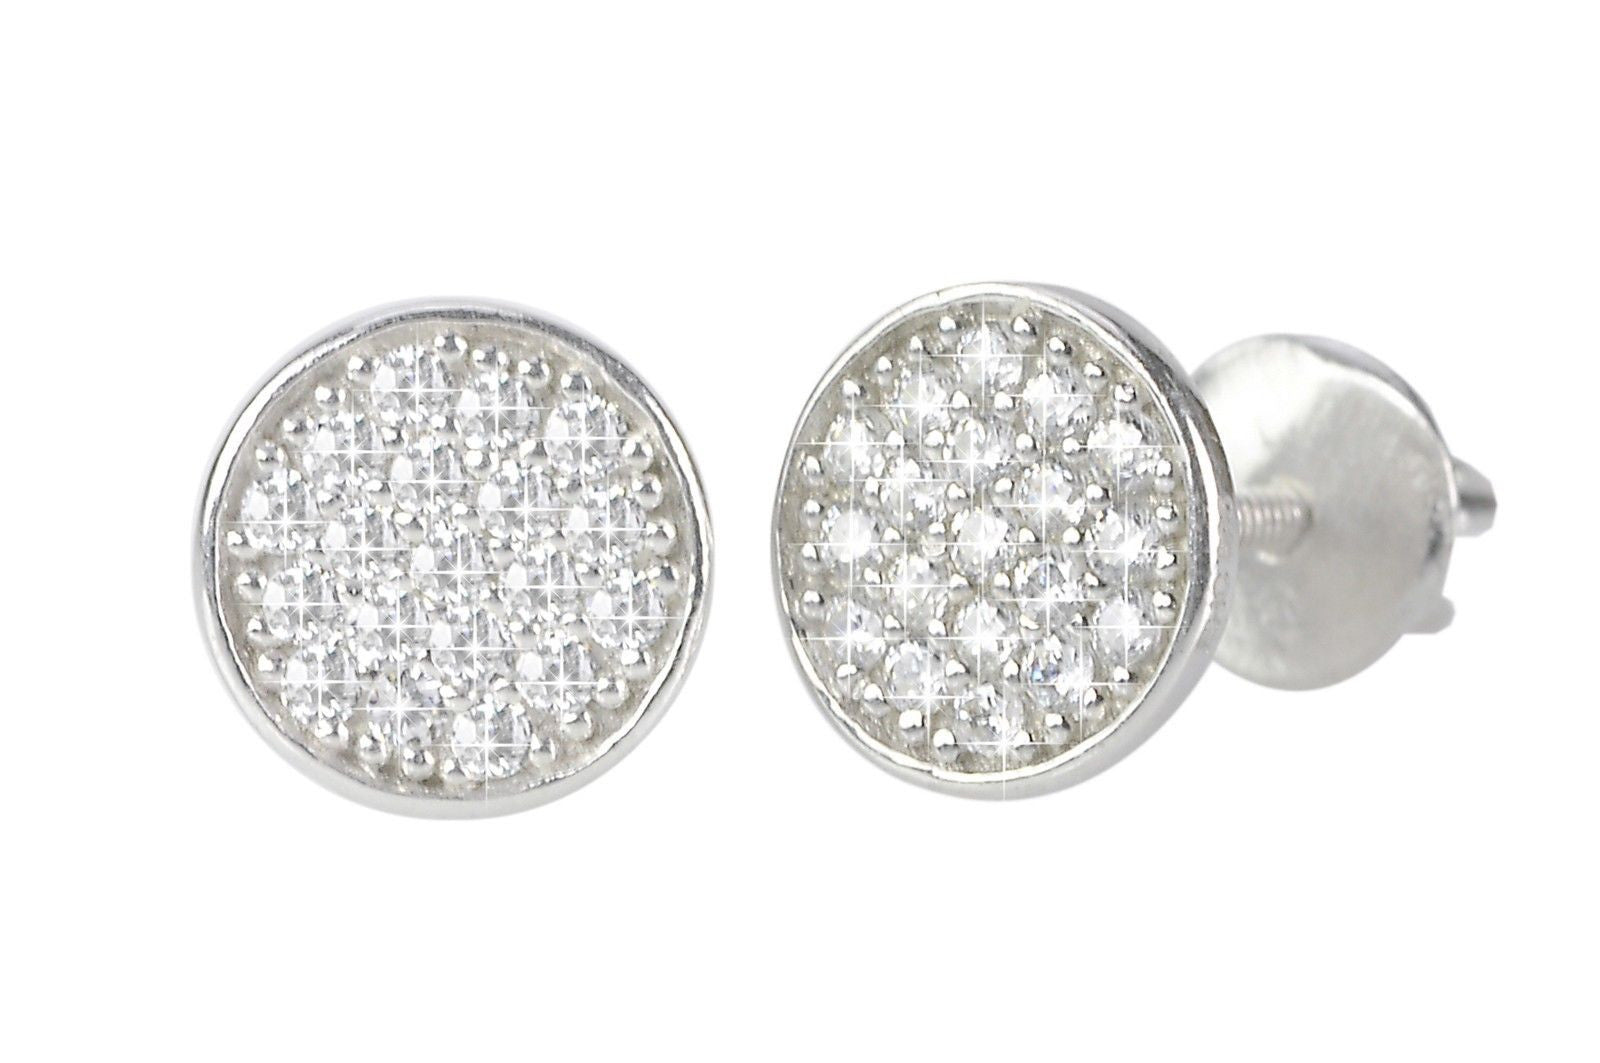 cfa4f3552 Micro Pave Stud Earrings Sterling Silver Screw Back CZ Cubic Zirconia |  Jewelryland.com